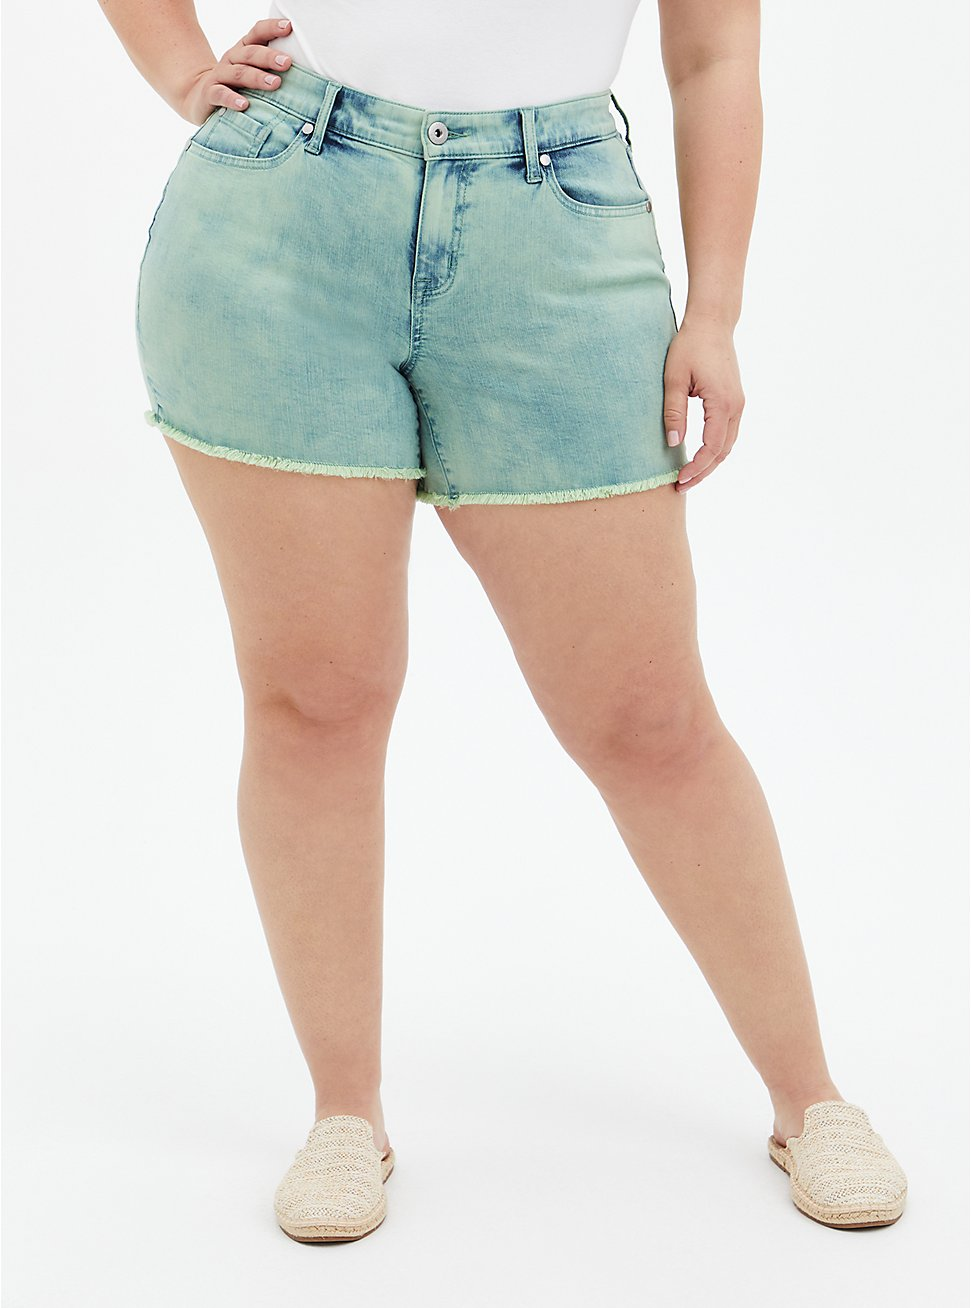 Mid Rise Midi Short - Vintage Stretch Acid Jade, , hi-res